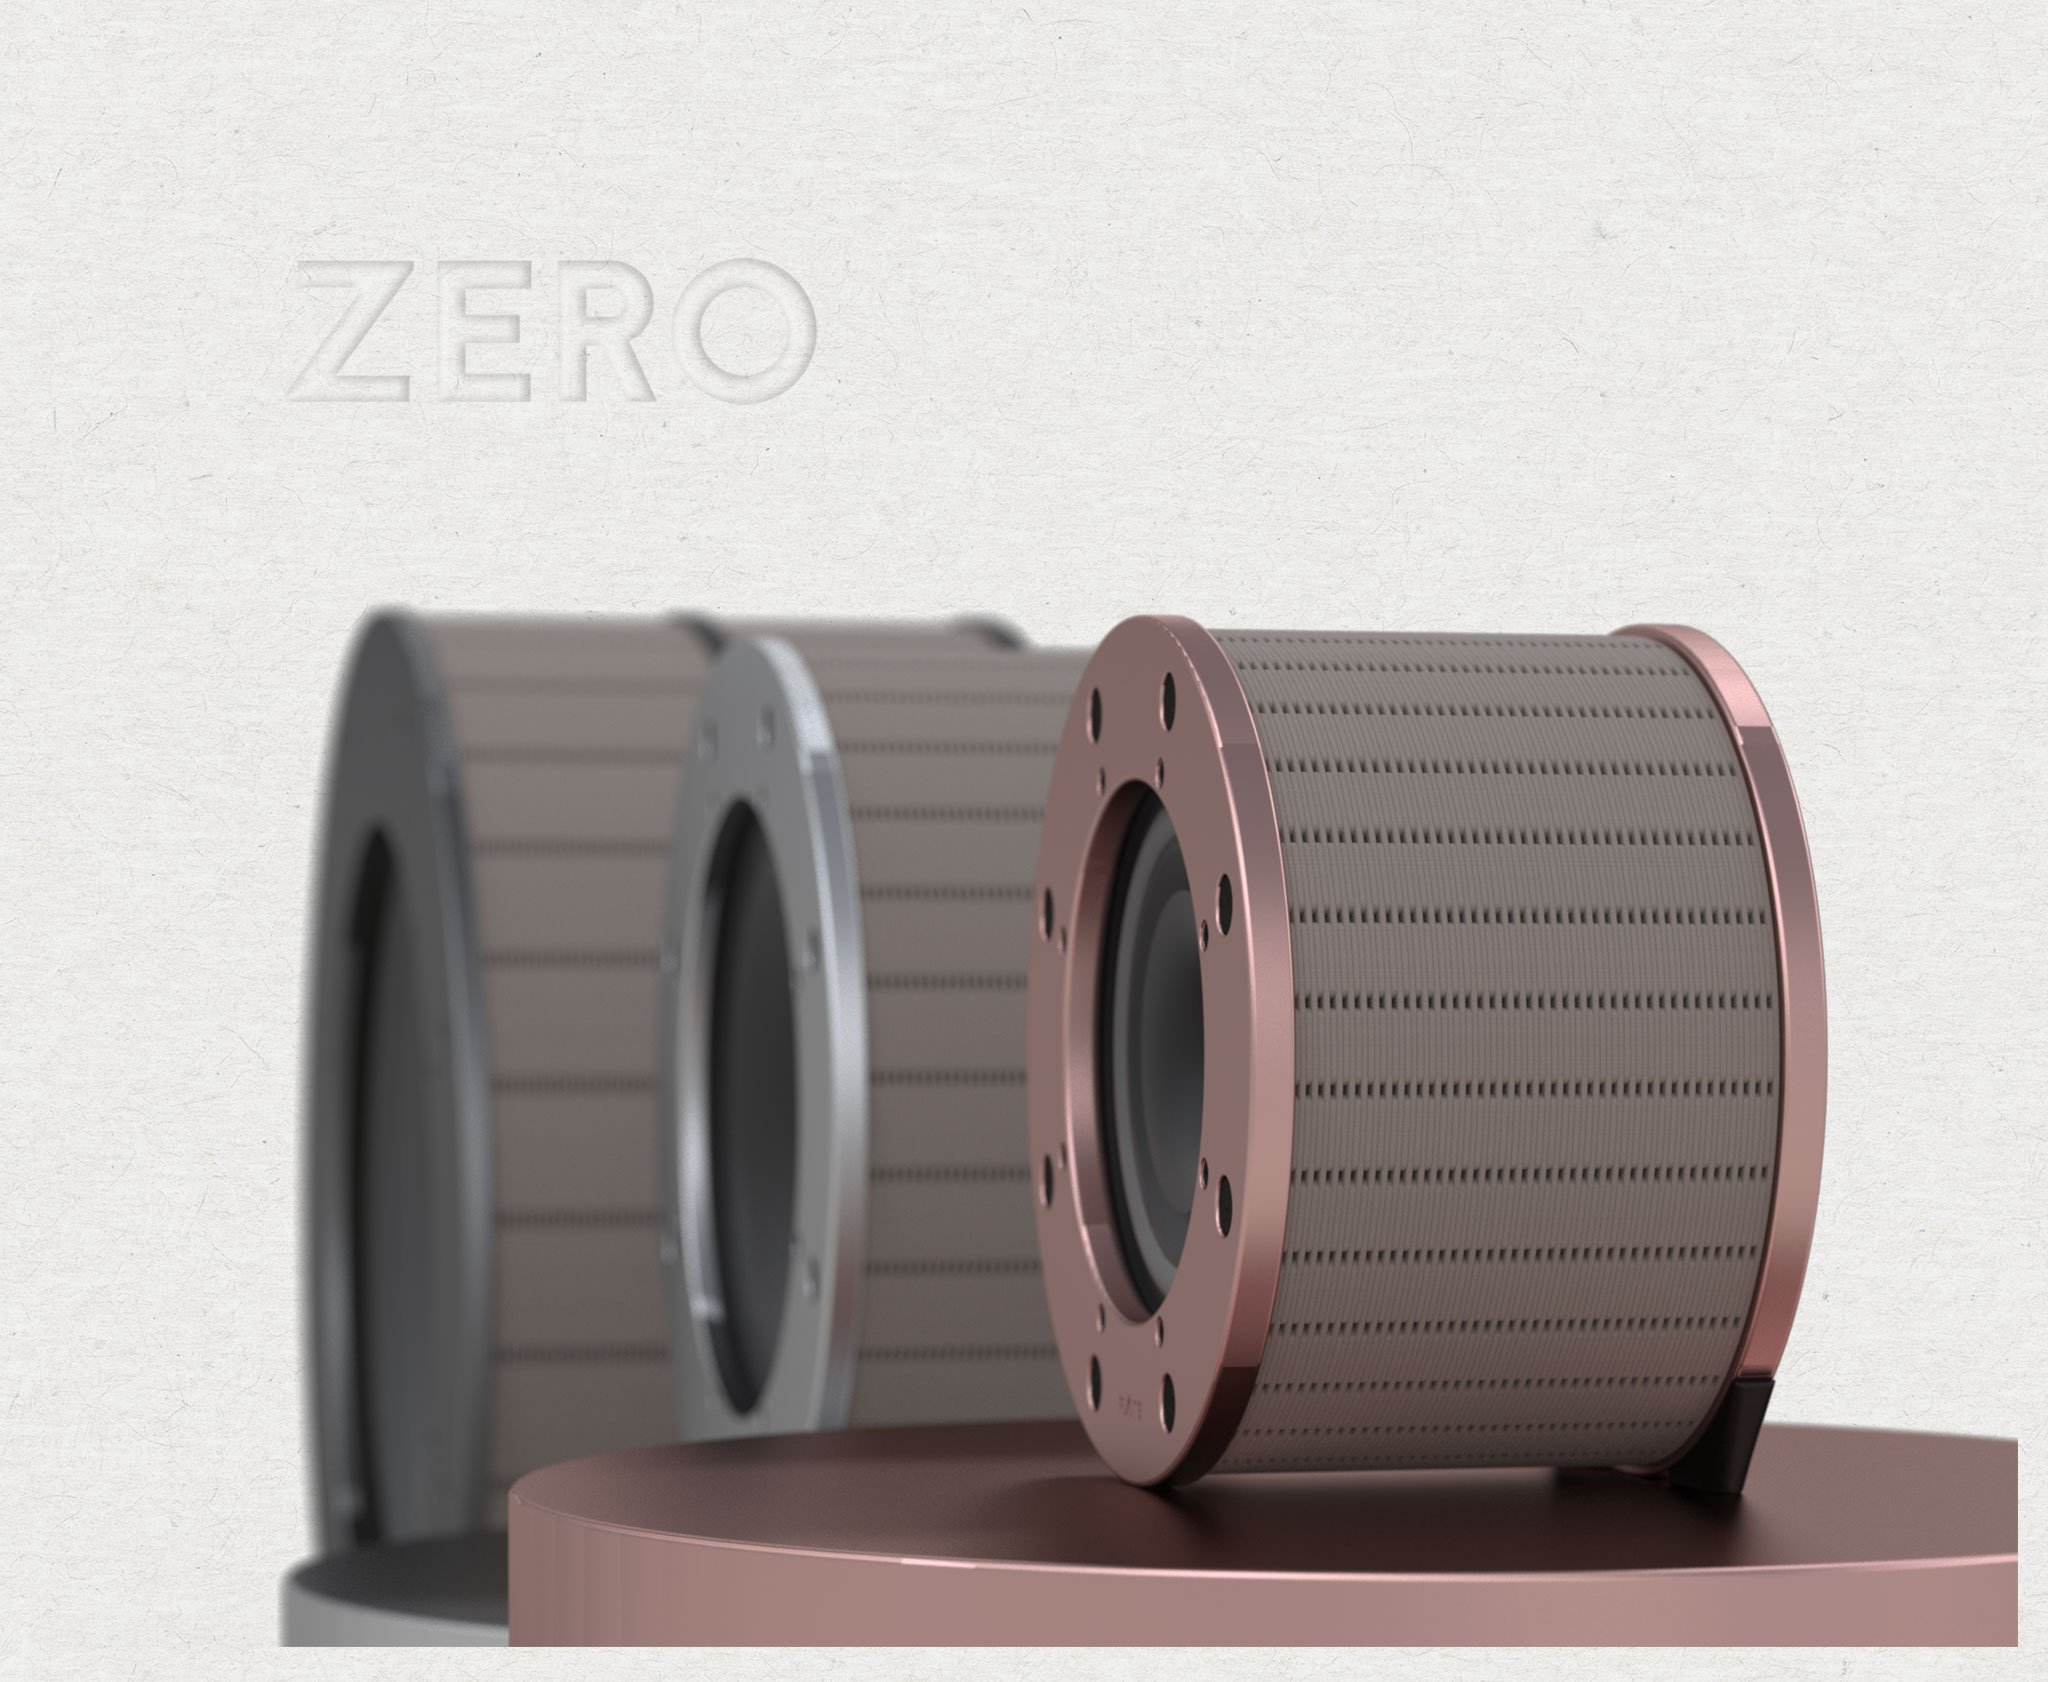 Premium speaker range sports zero waste, eco-friendly design